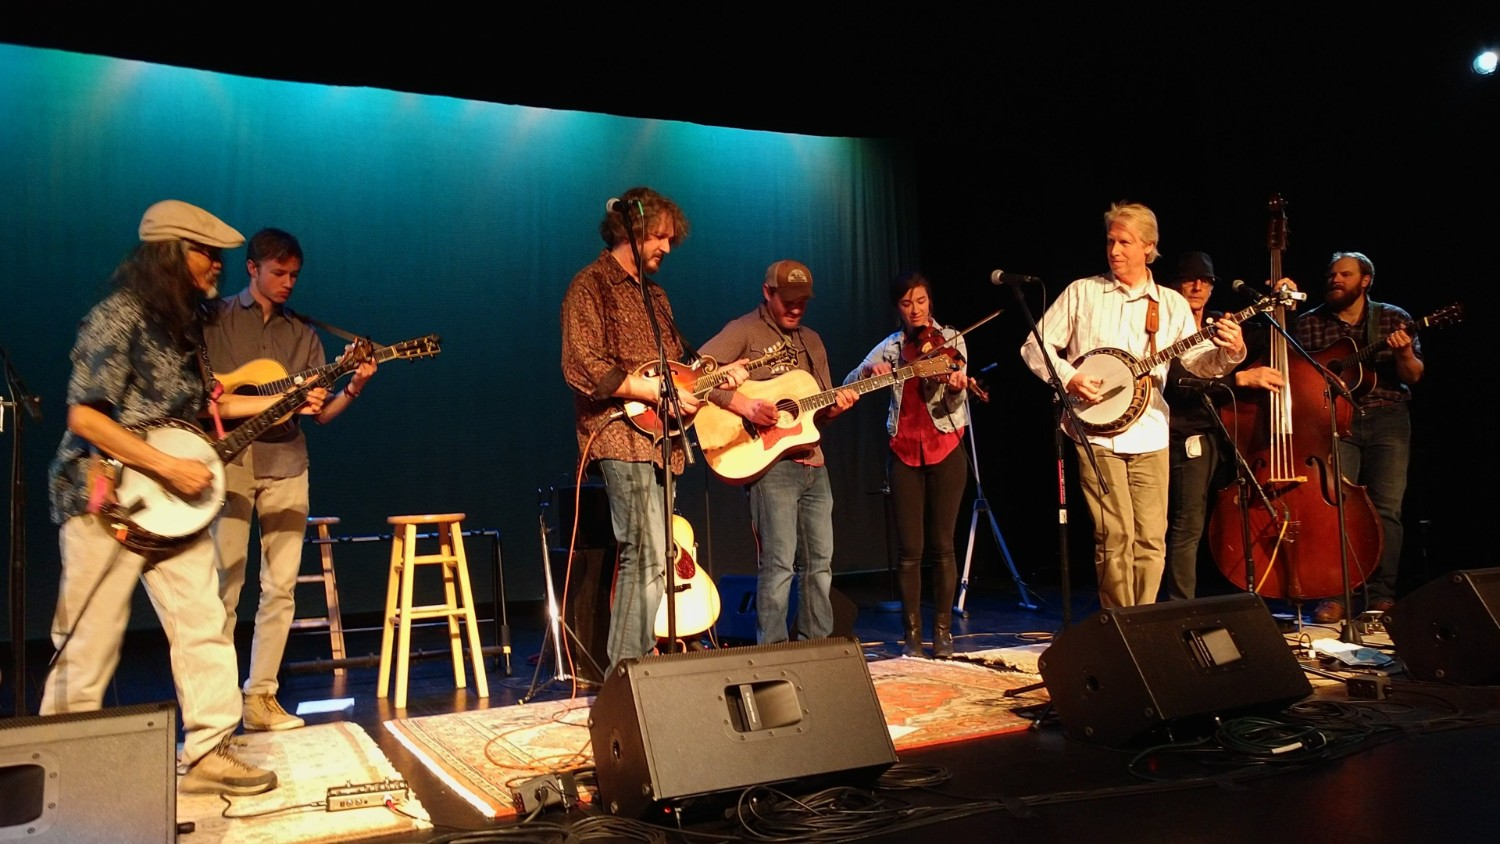 Music at the Center for the Arts, Crested Butte